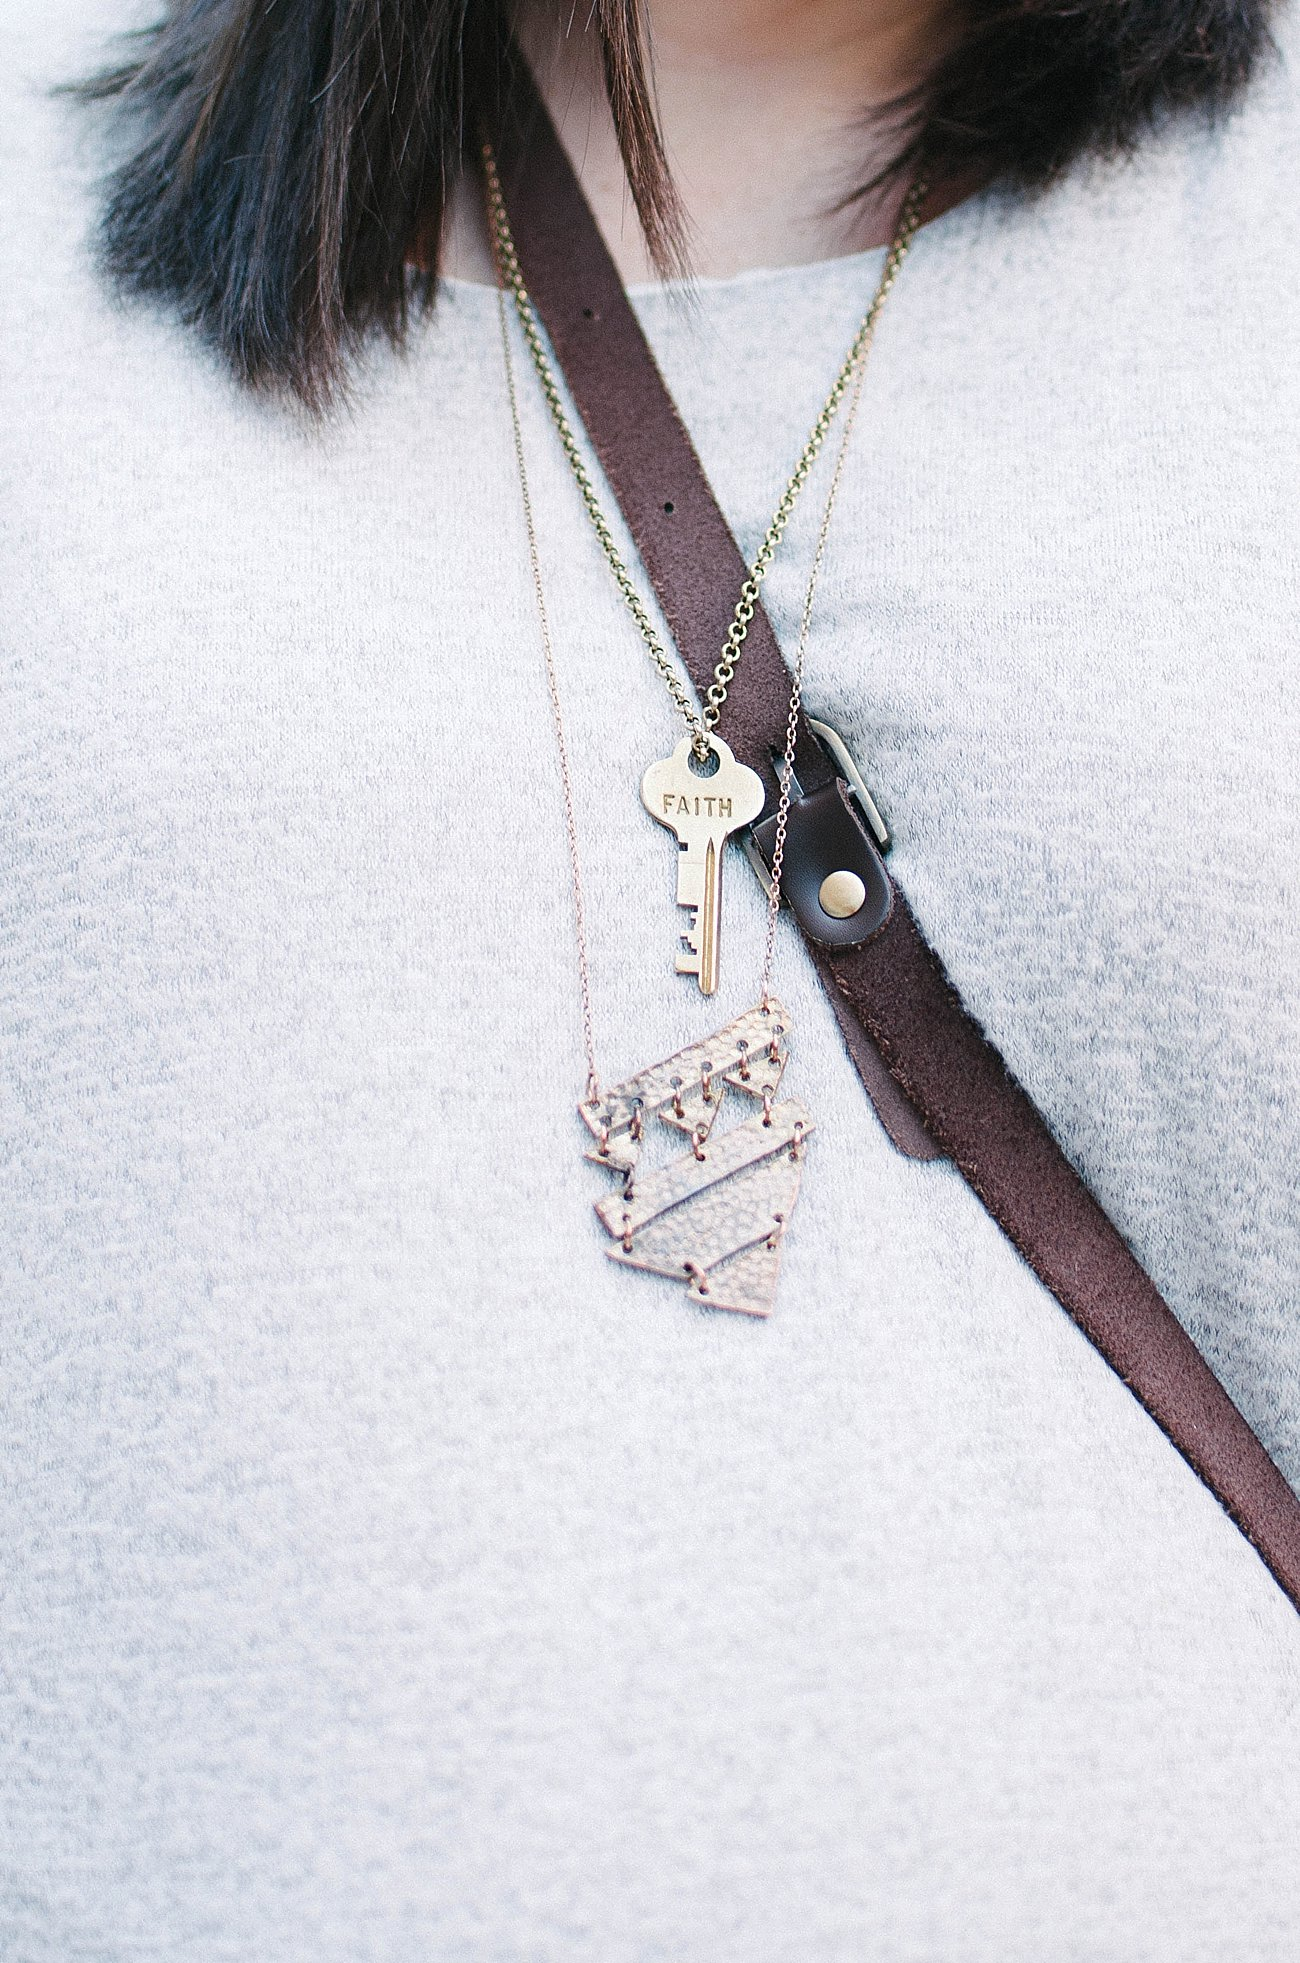 The Flourish Market / Mata Traders necklace and The Giving Keys necklace